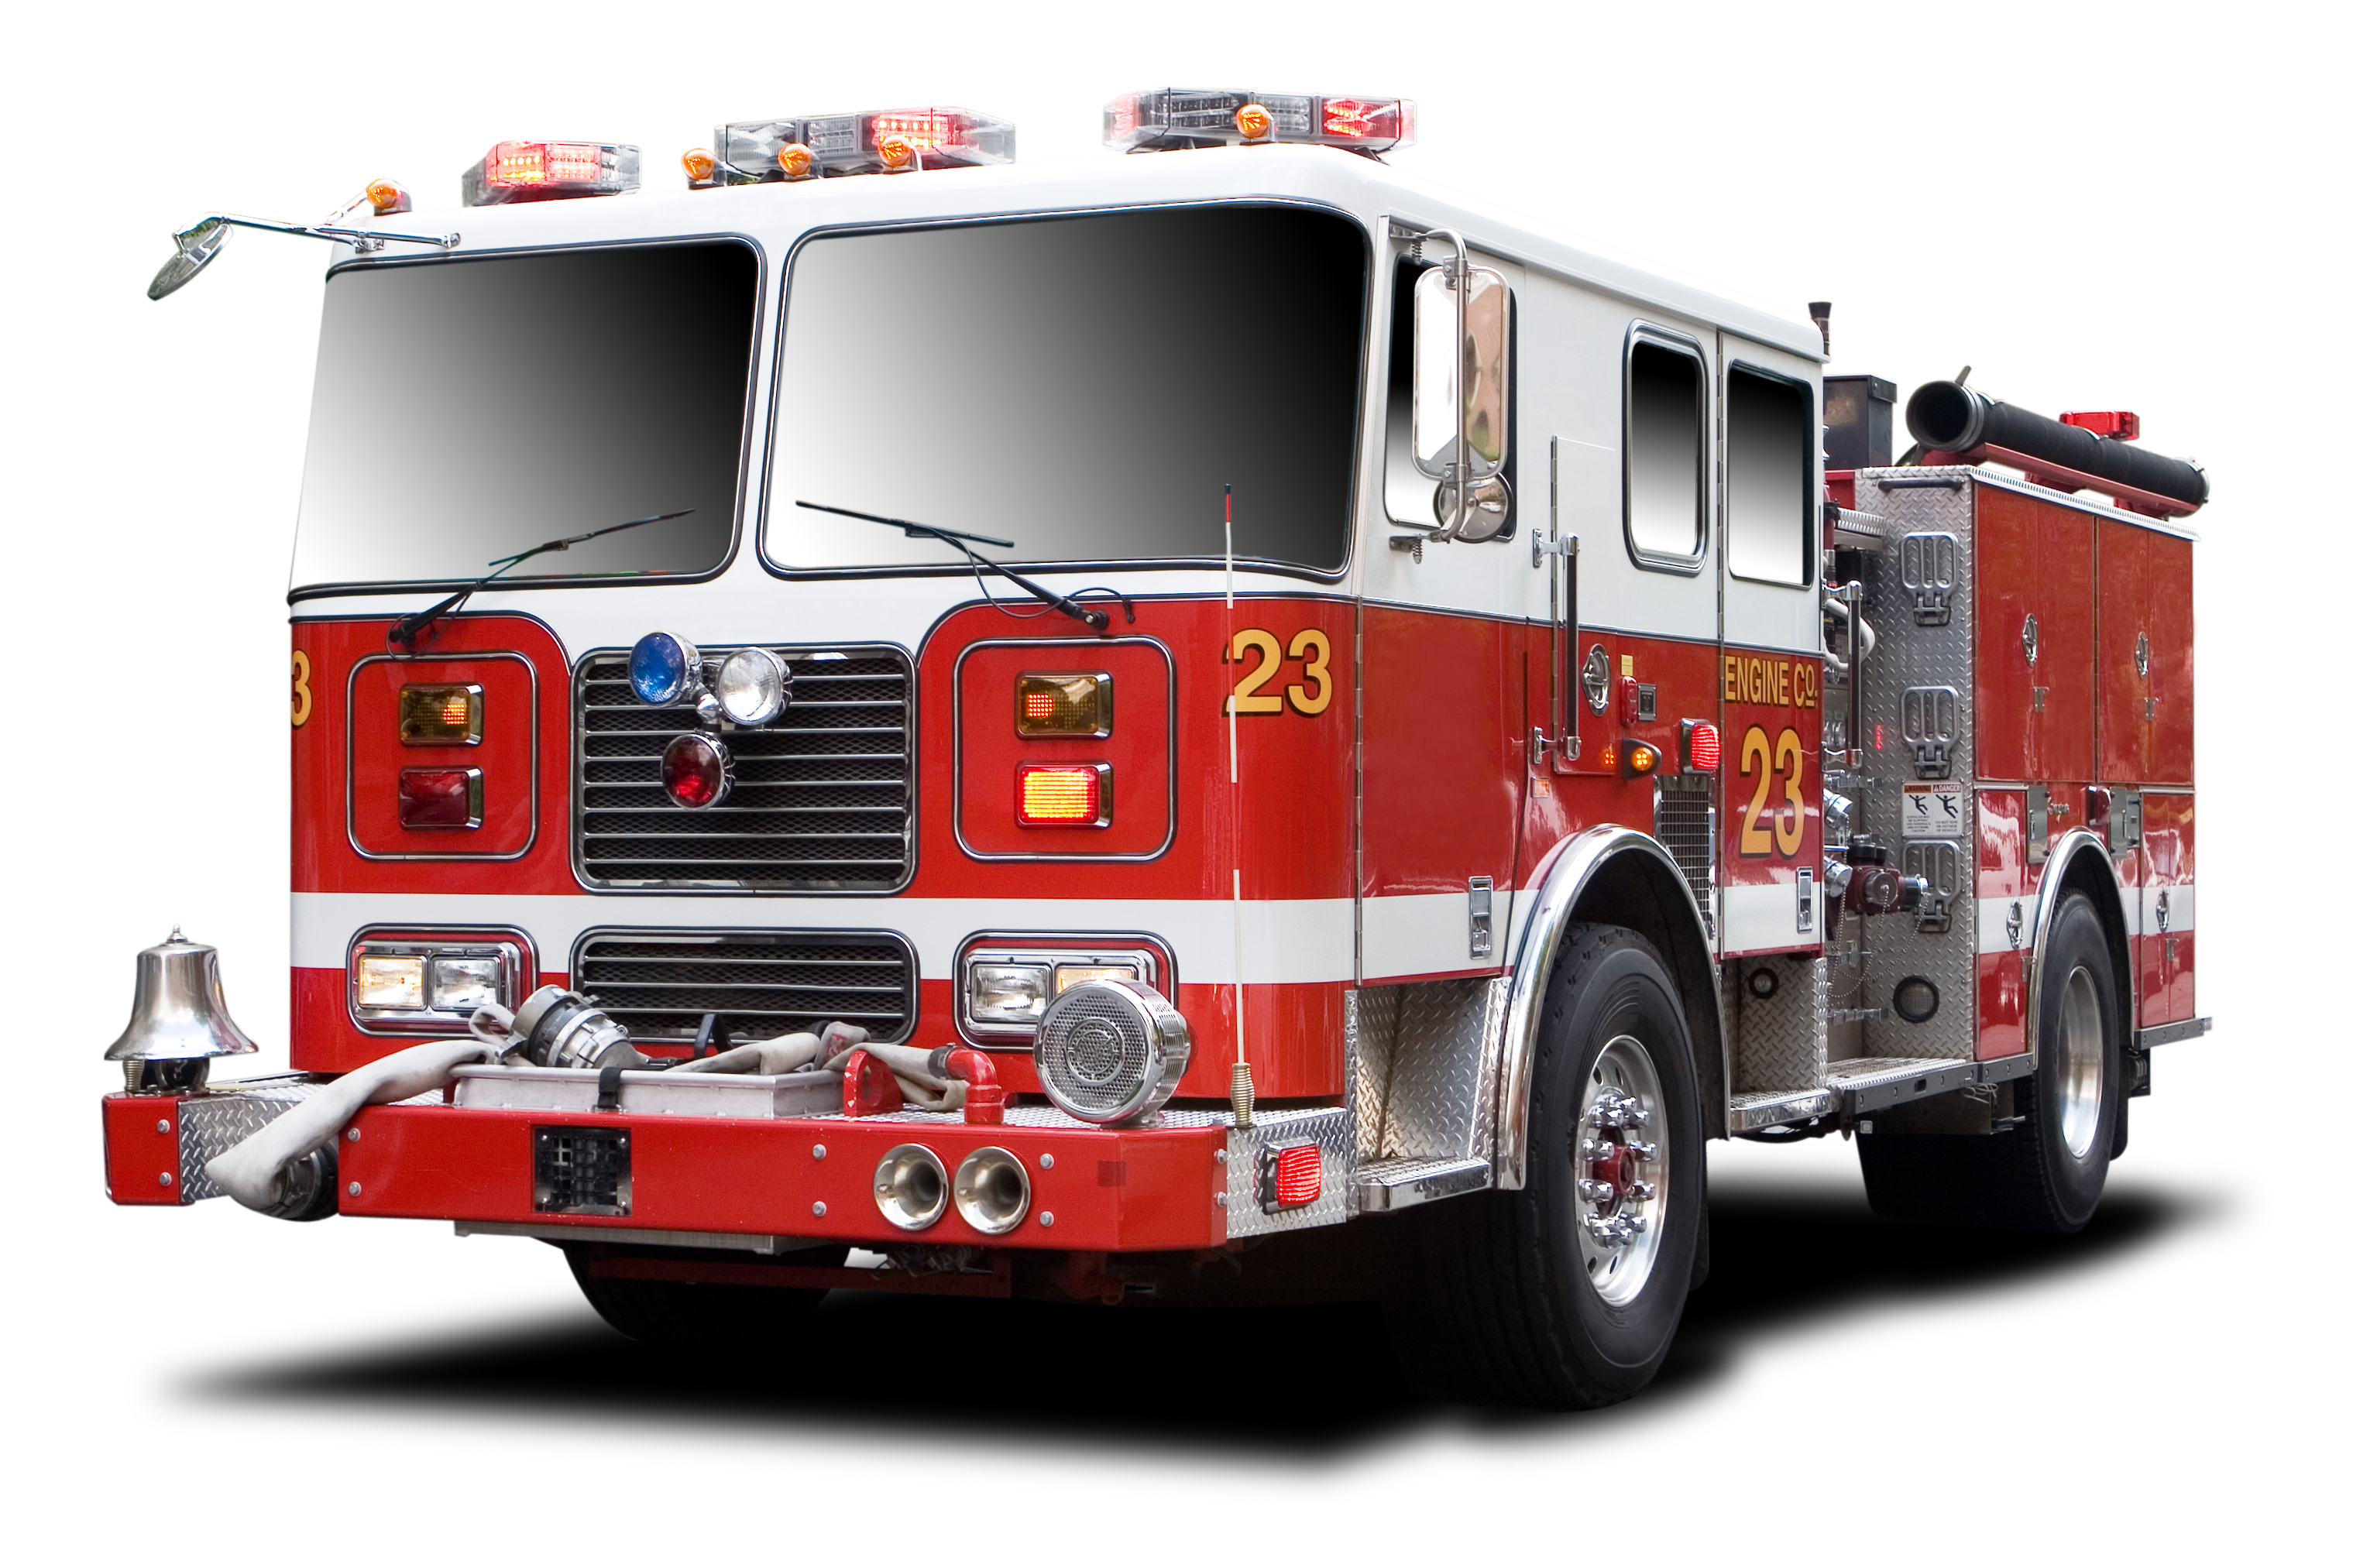 High Resolution Wallpaper | Fire Truck 3038x2025 px - Fire Station PNG HD